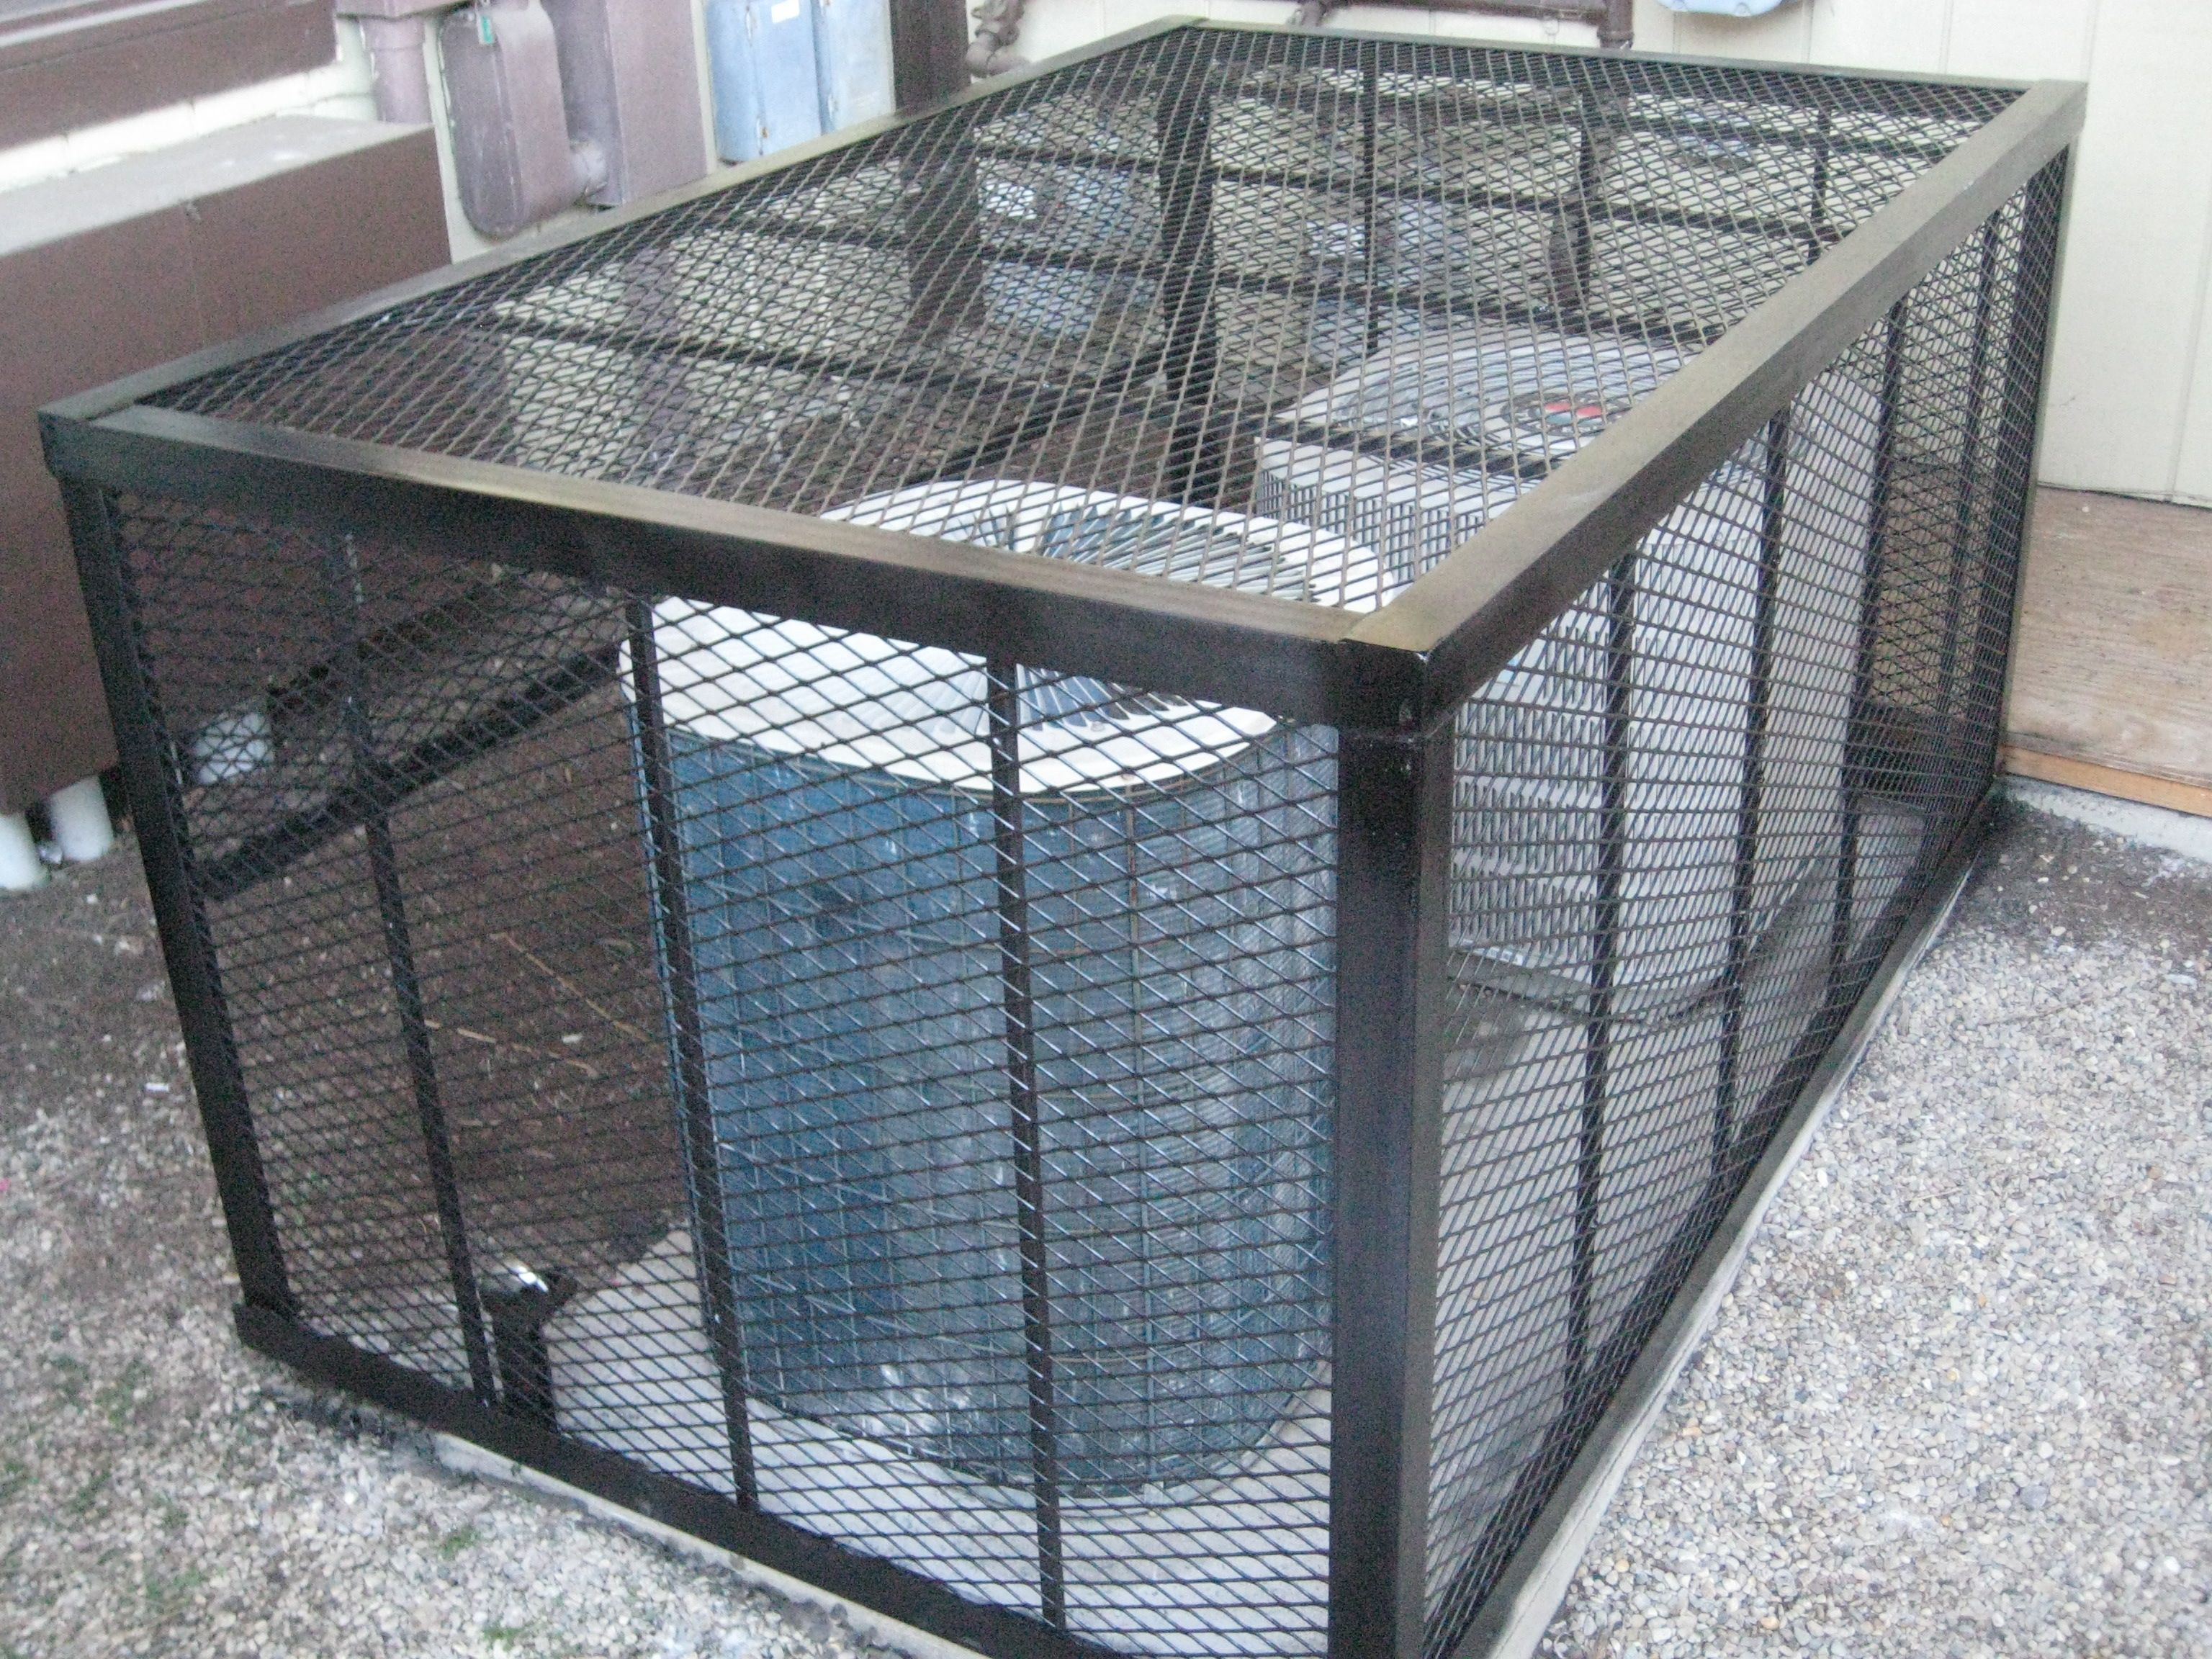 Dual Air Conditioner Cage Trash can, Air conditioner